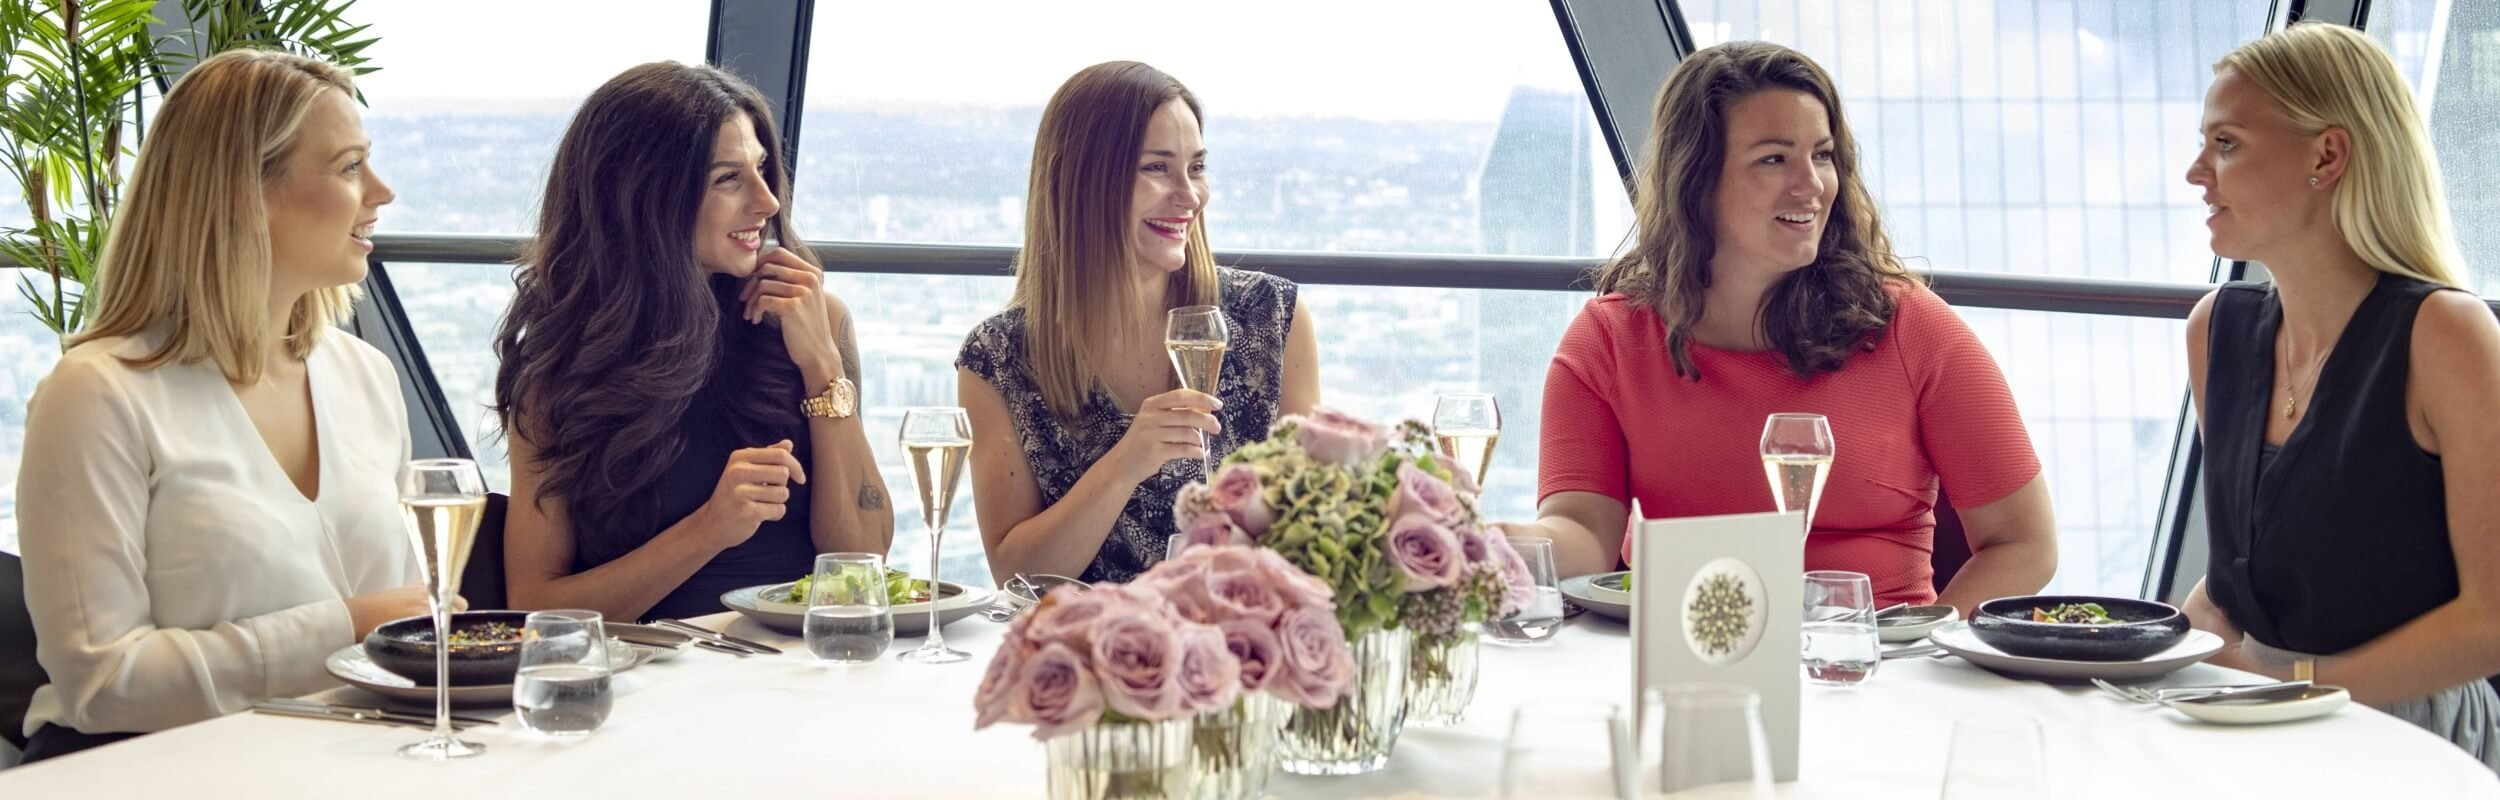 Searcys celebrates International Women's Day - Searcys at the Gherkin